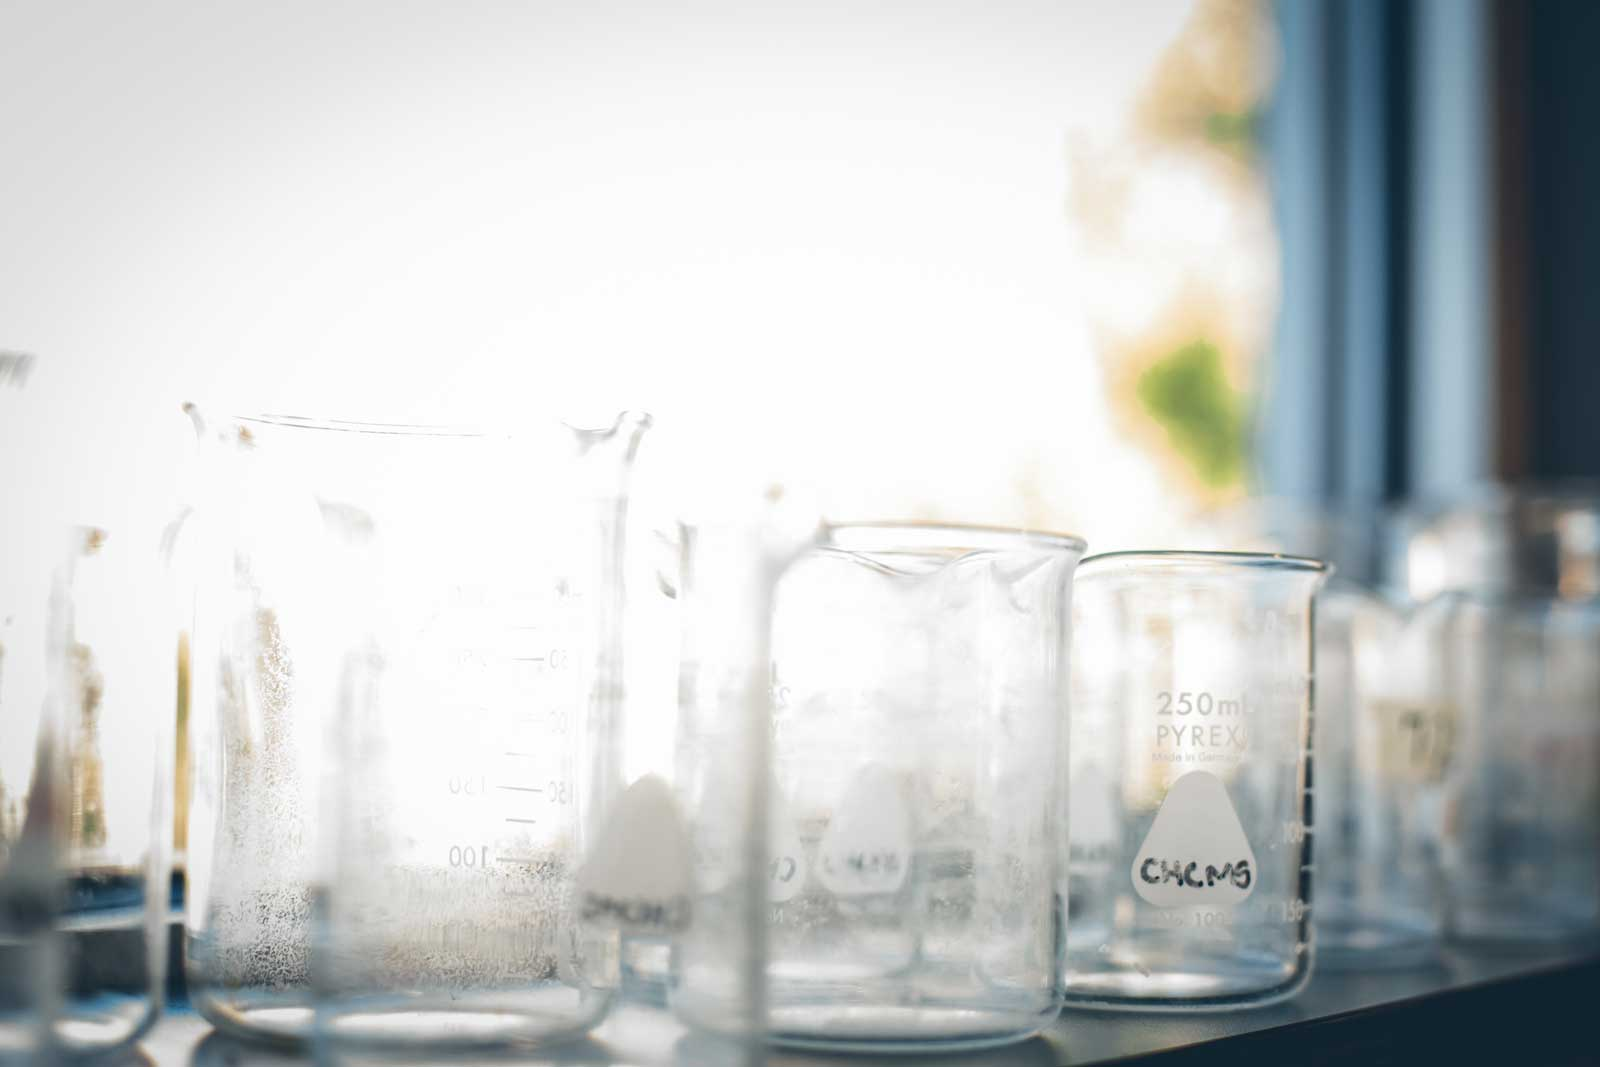 Science beakers sitting on a window ledge